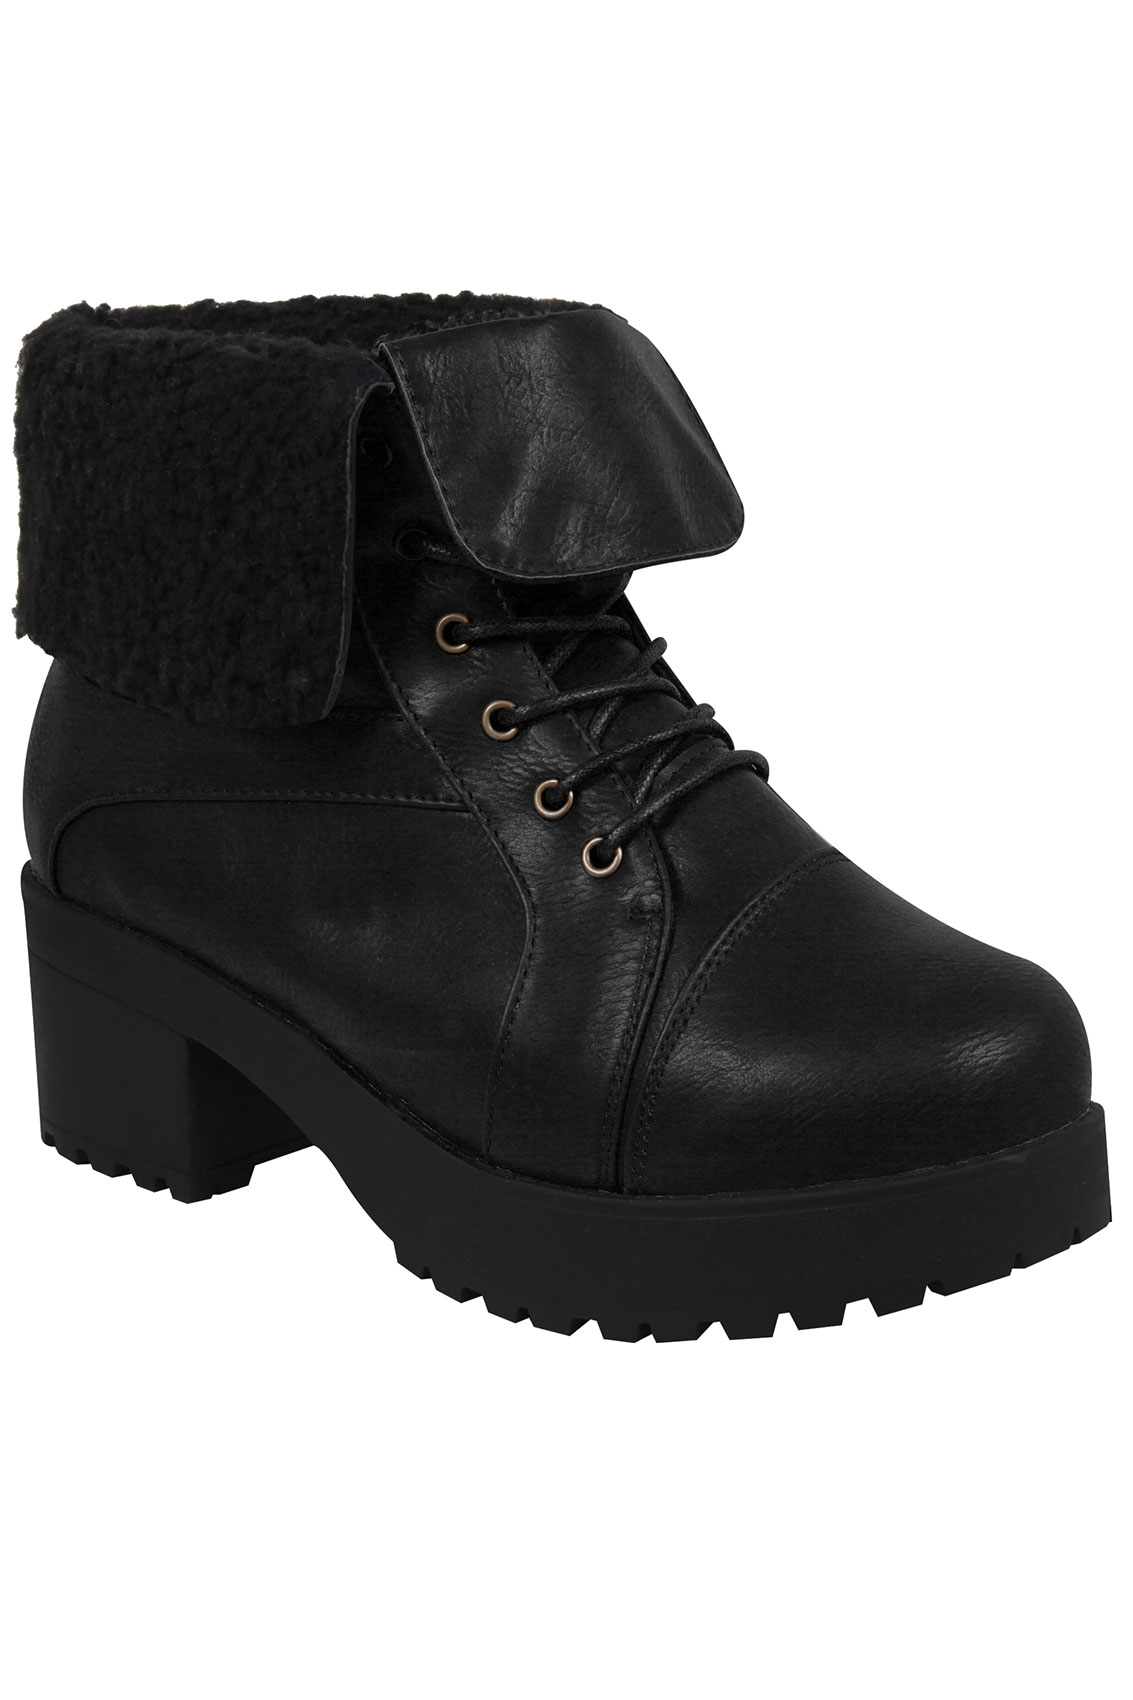 black lace ankle boot with cleated heel eee fit 4eee 5eee